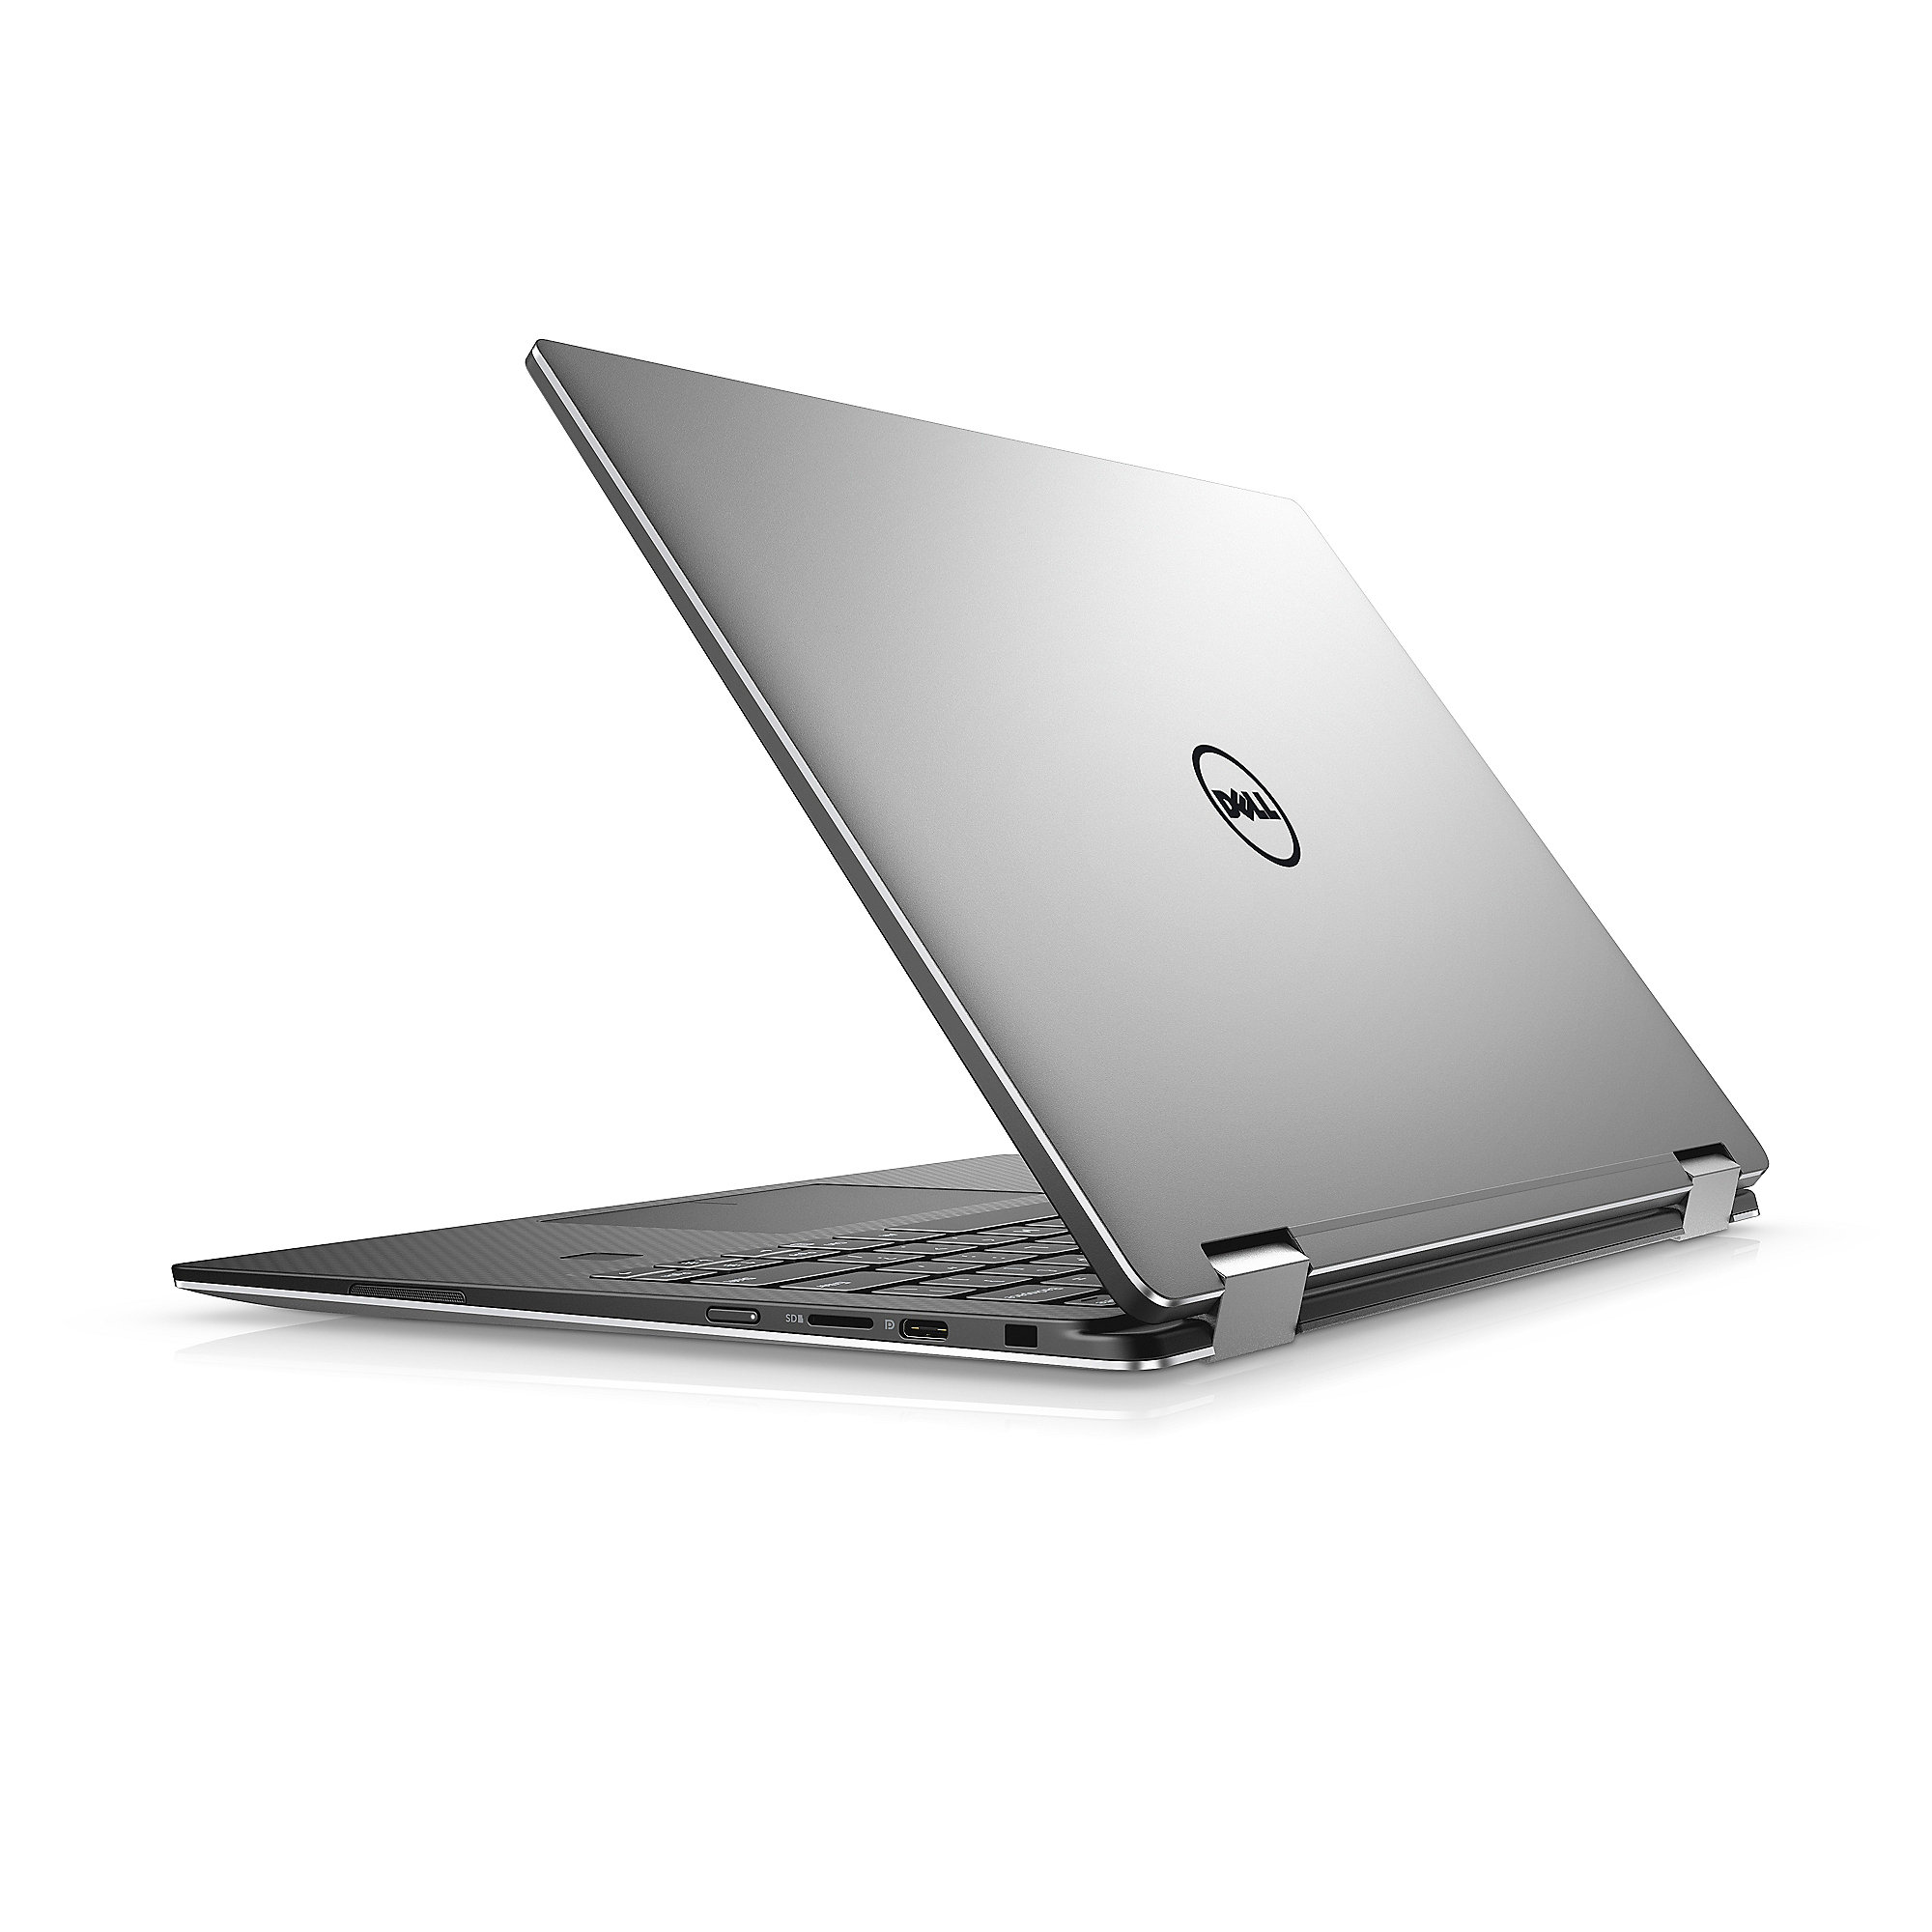 "DELL XPS 13 2in1 9365-i5-7Y54 4GB/128GB SSD 13"" FHD Touch Windows 10 Home"